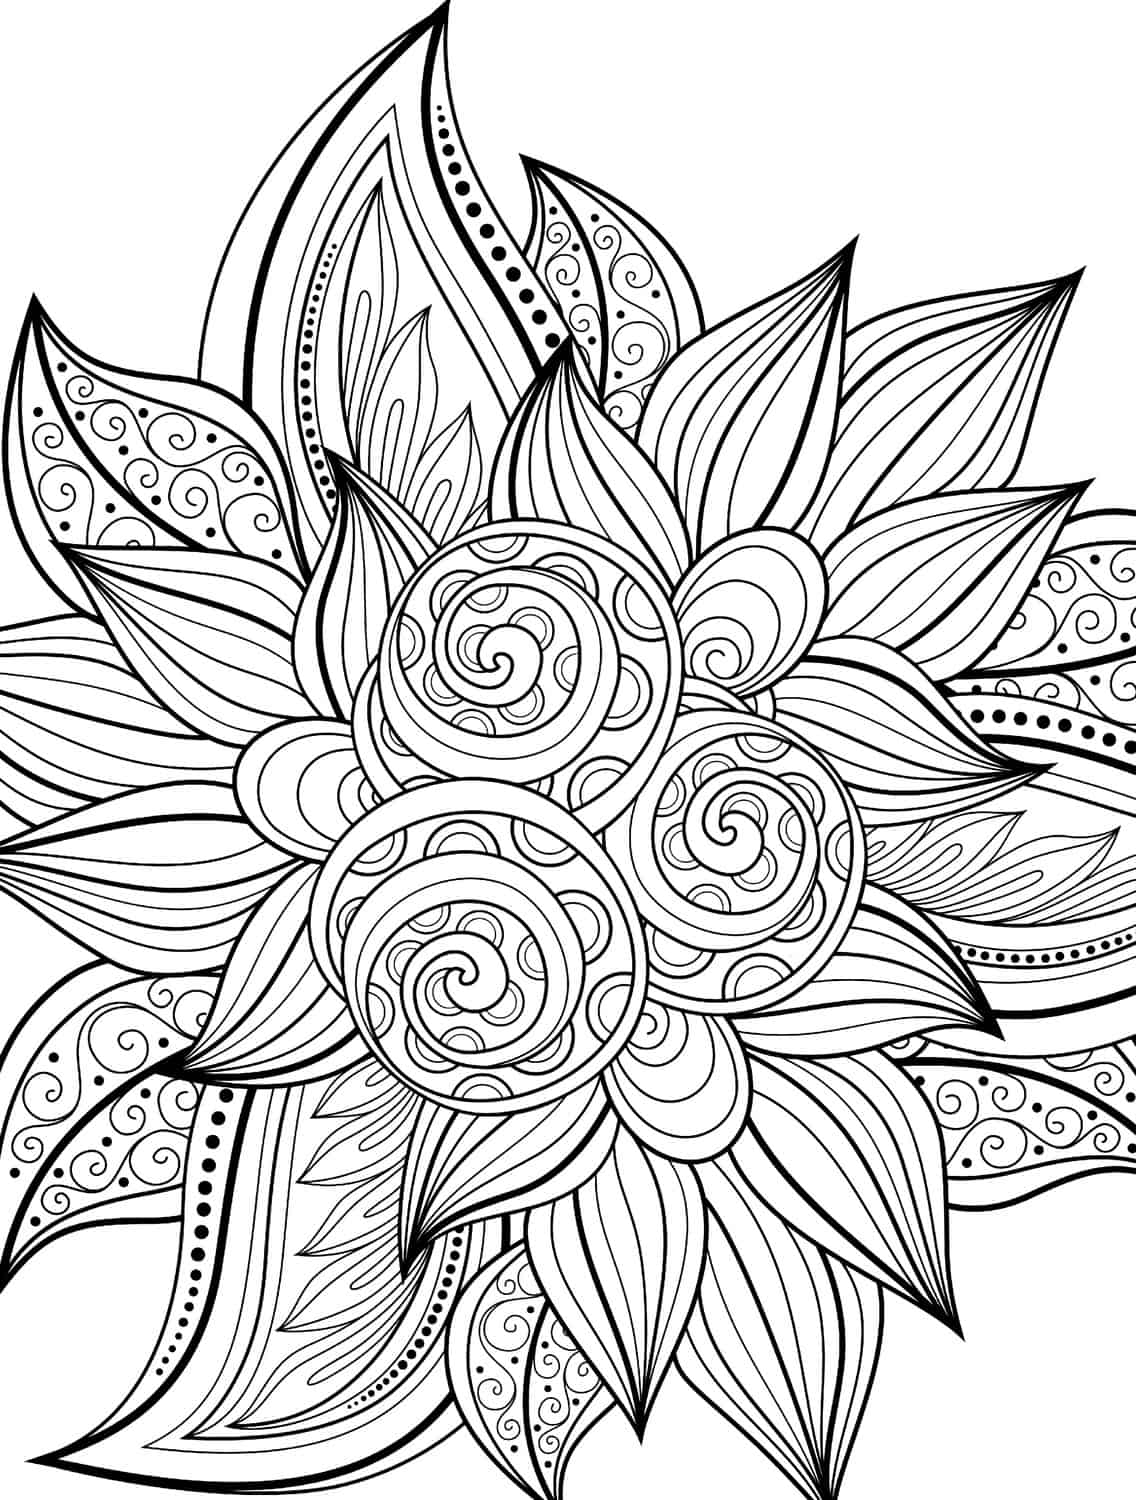 10 free printable holiday adult coloring pages for Adult coloring pages printable